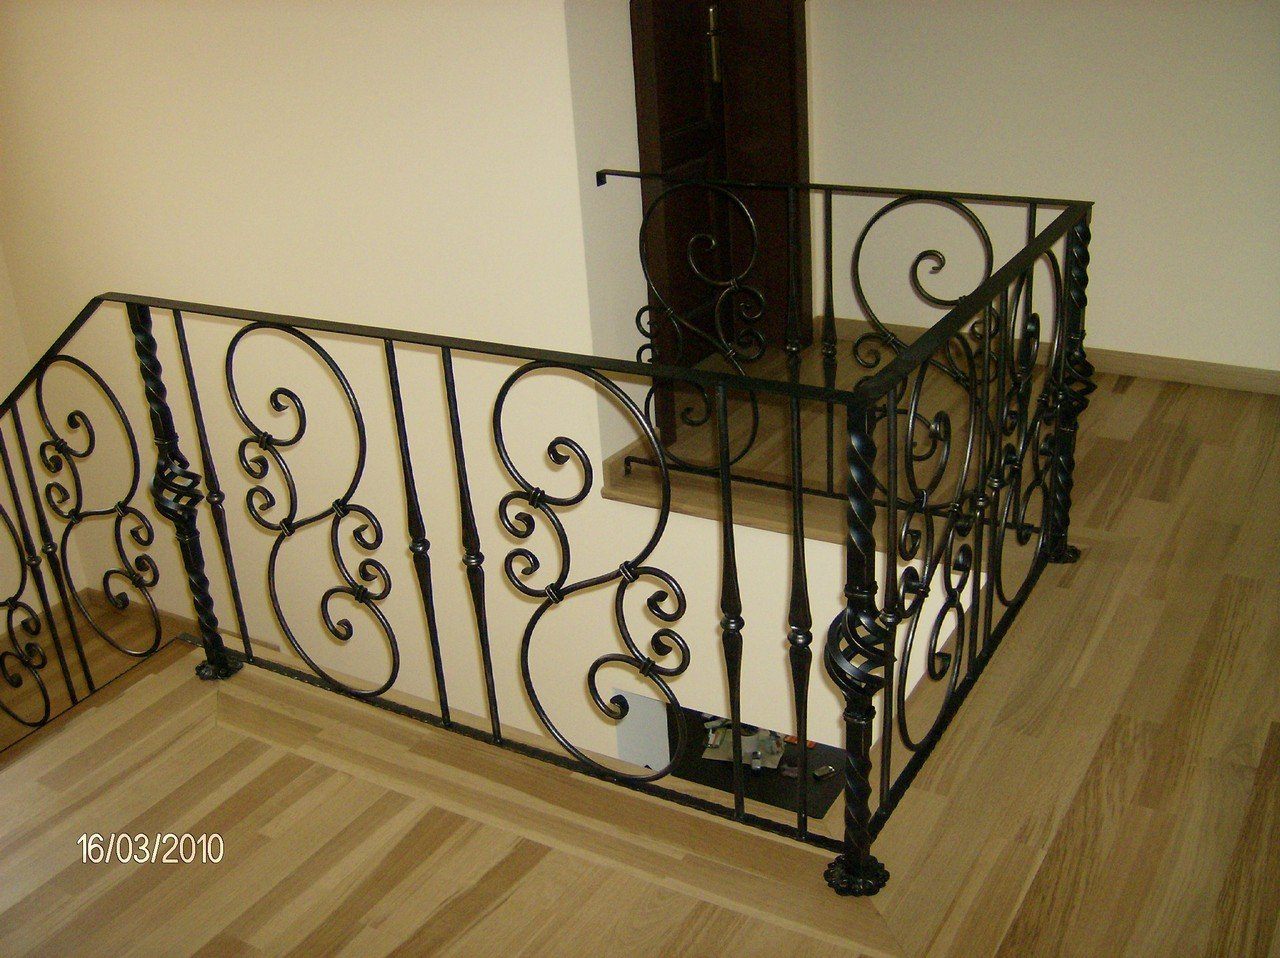 balustrade-fier-289.jpg